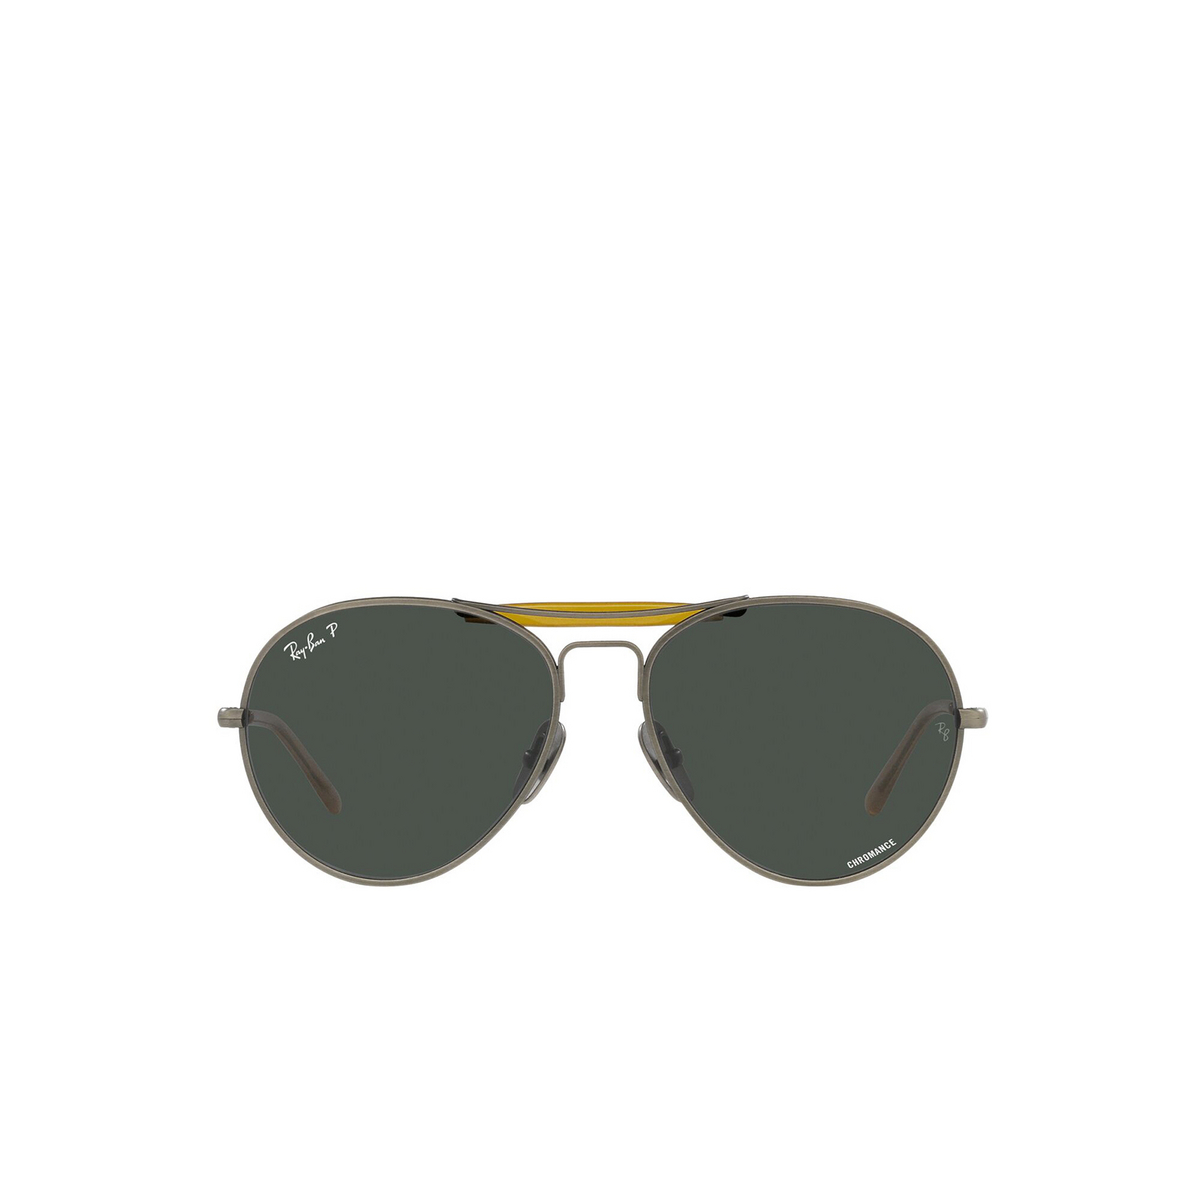 Ray-Ban® Aviator Sunglasses: RB8063 color Demi Gloss Pewter 9208K8 - front view.